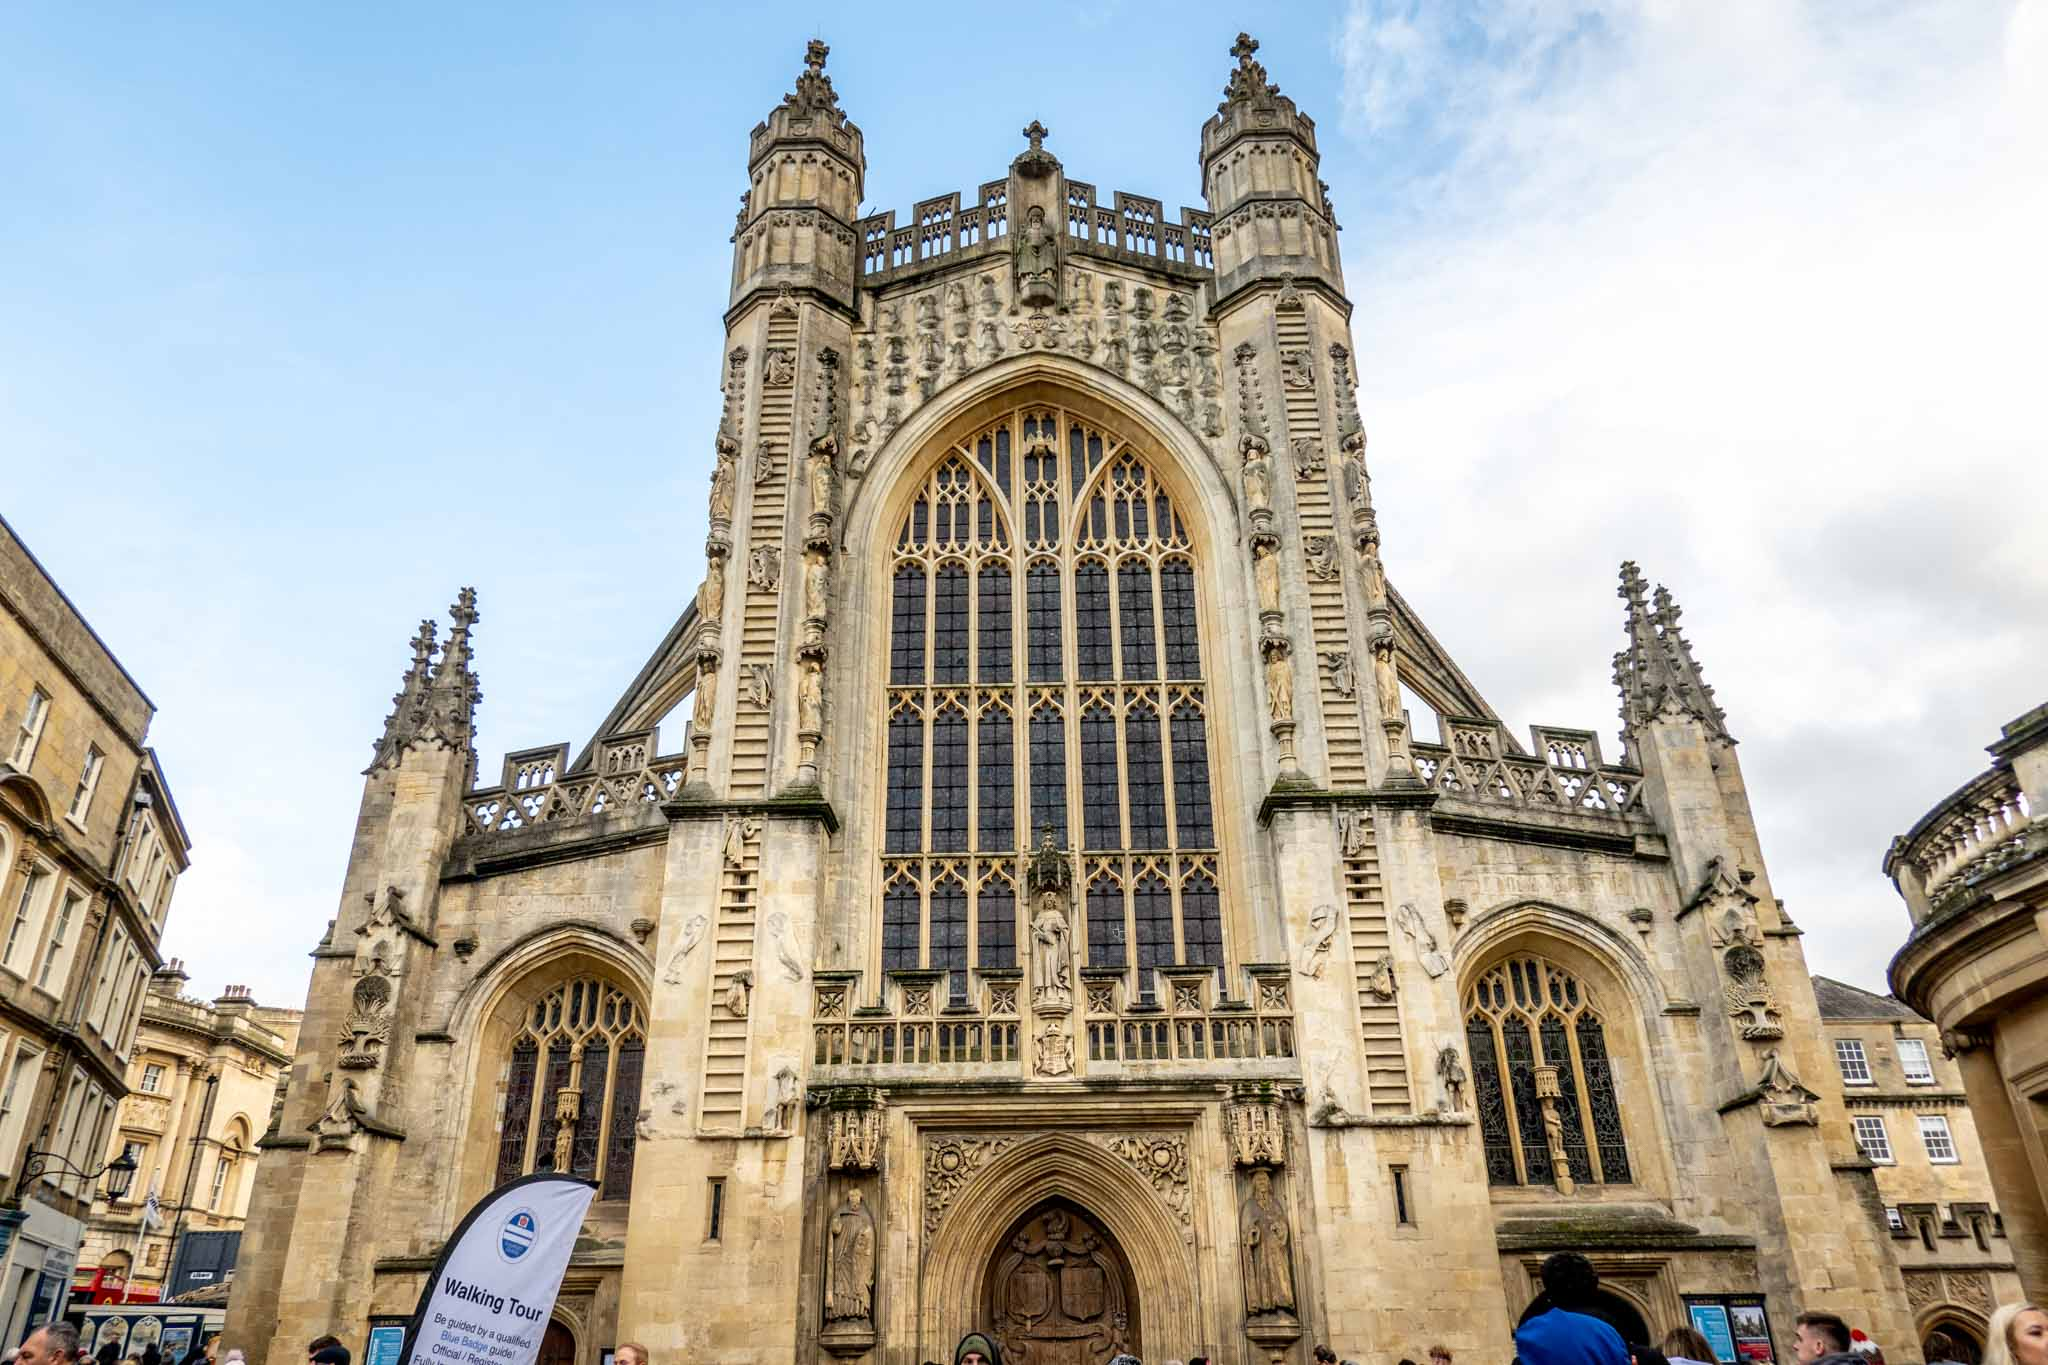 Outside of Bath Abbey showing its stained glass windows and arches